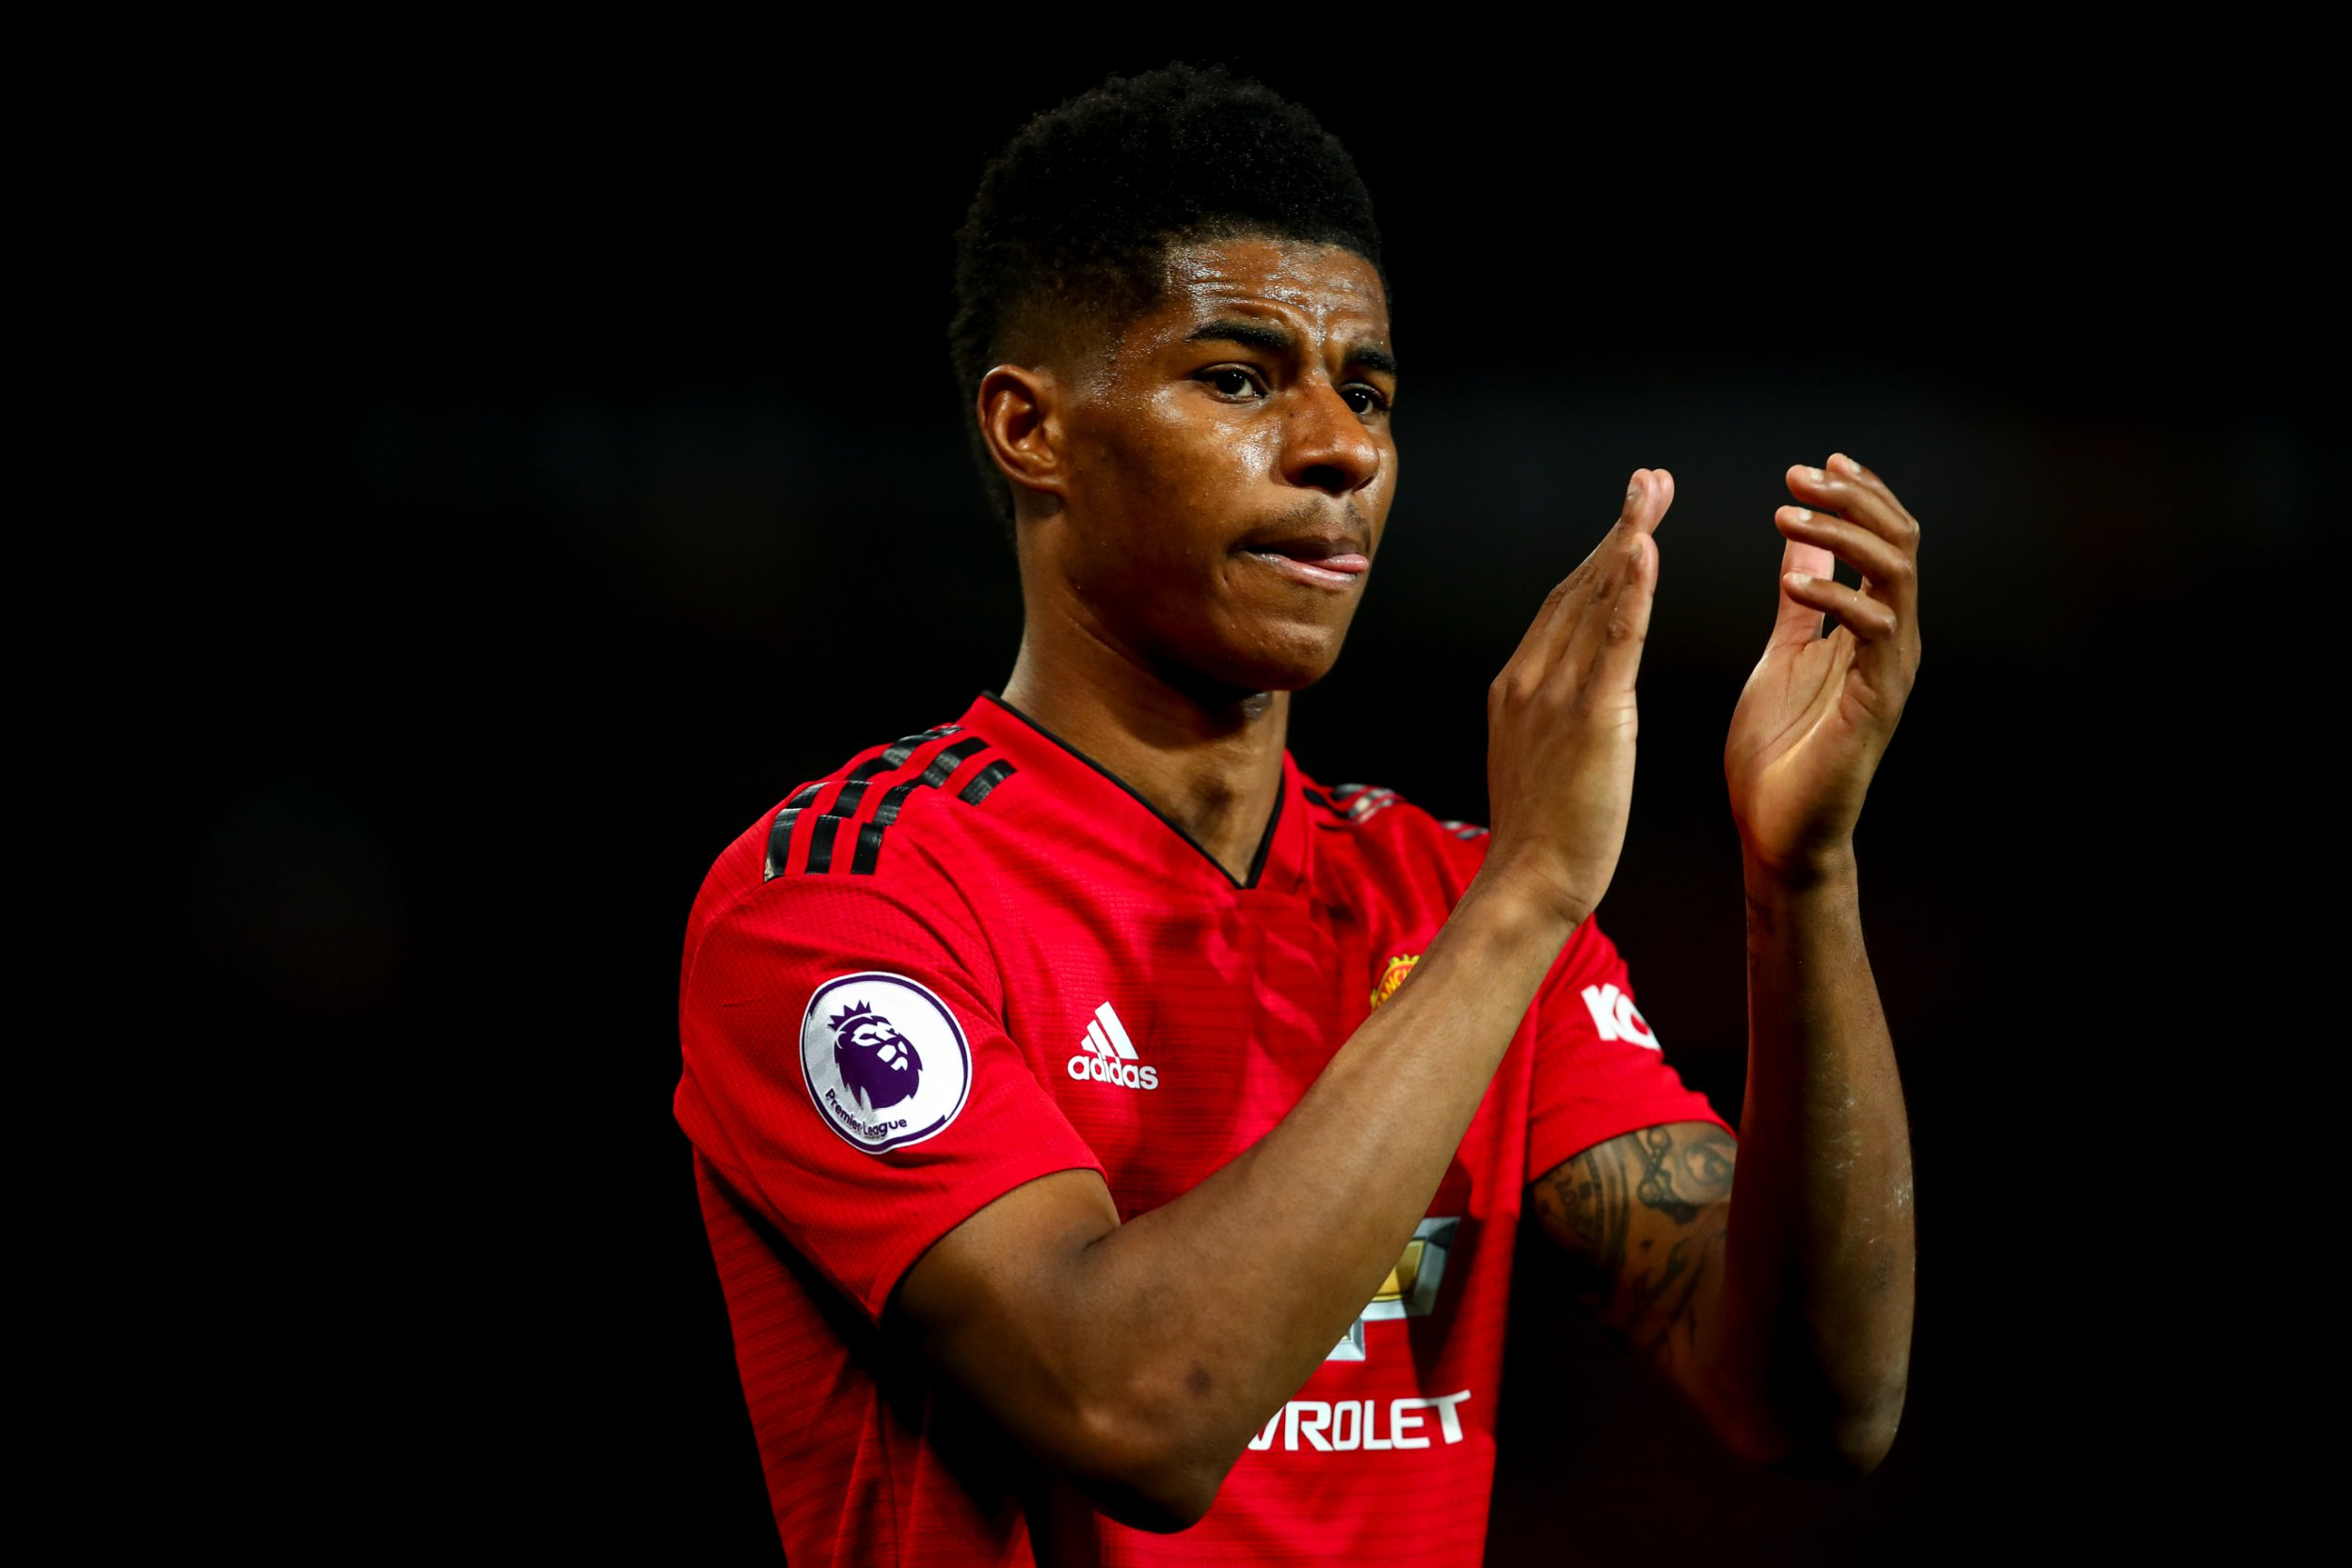 MANCHESTER, ENGLAND - APRIL 24: Marcus Rashford of Manchester United applauds the fans at full time during the Premier League match between Manchester United and Manchester City at Old Trafford on April 24, 2019 in Manchester, United Kingdom. (Photo by Robbie Jay Barratt - AMA/Getty Images)